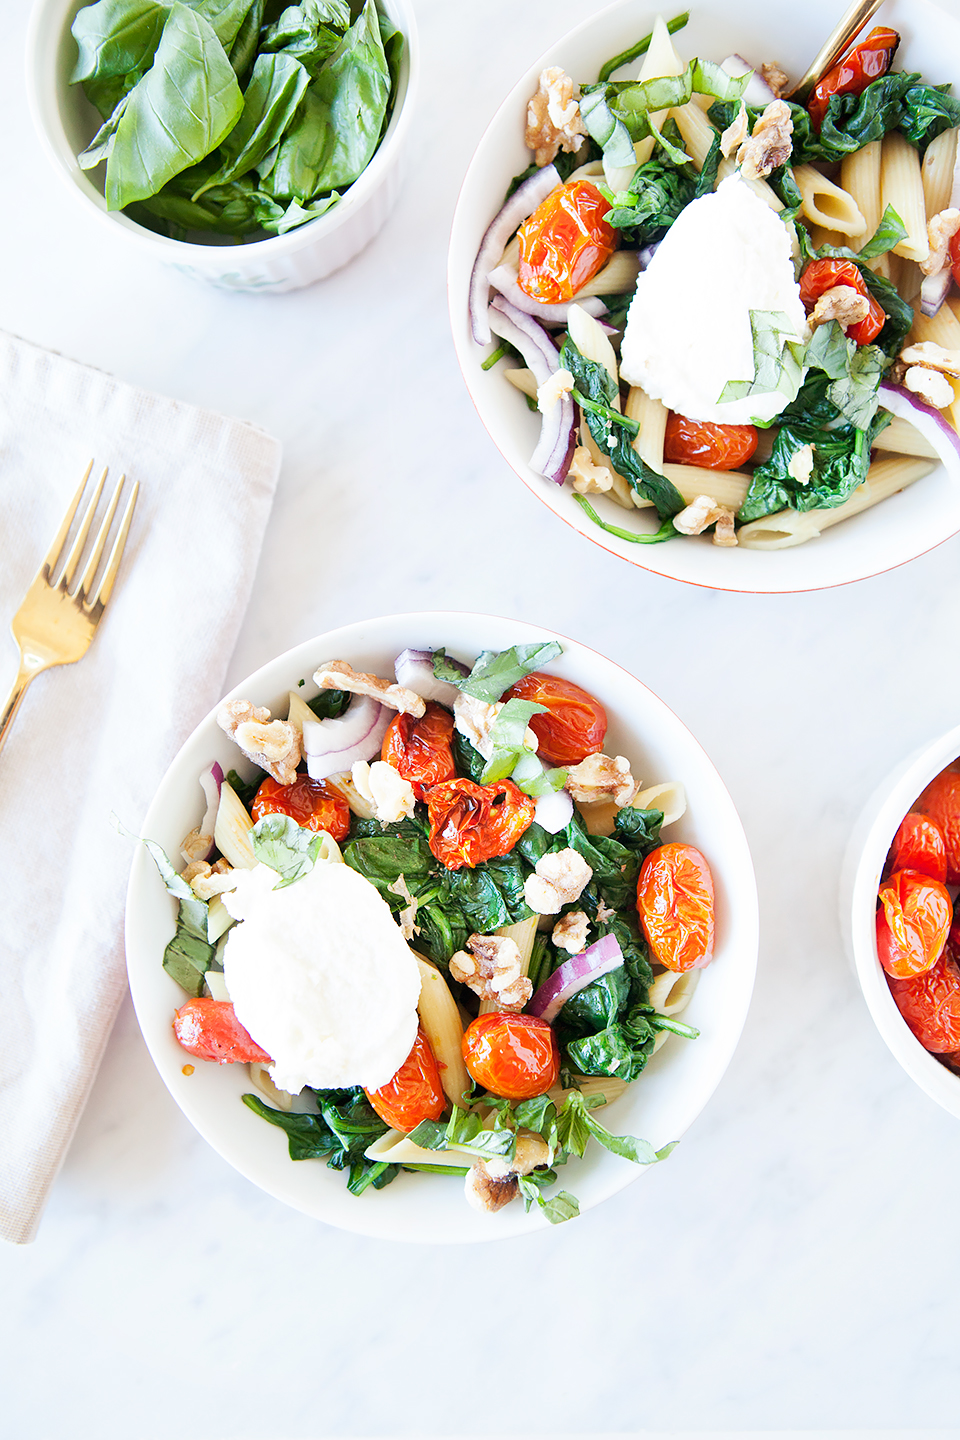 Roasted Tomato and Spinach Pasta Bowls | Vegan and gluten-free. | Loveleaf Co. | www.loveleafco.com